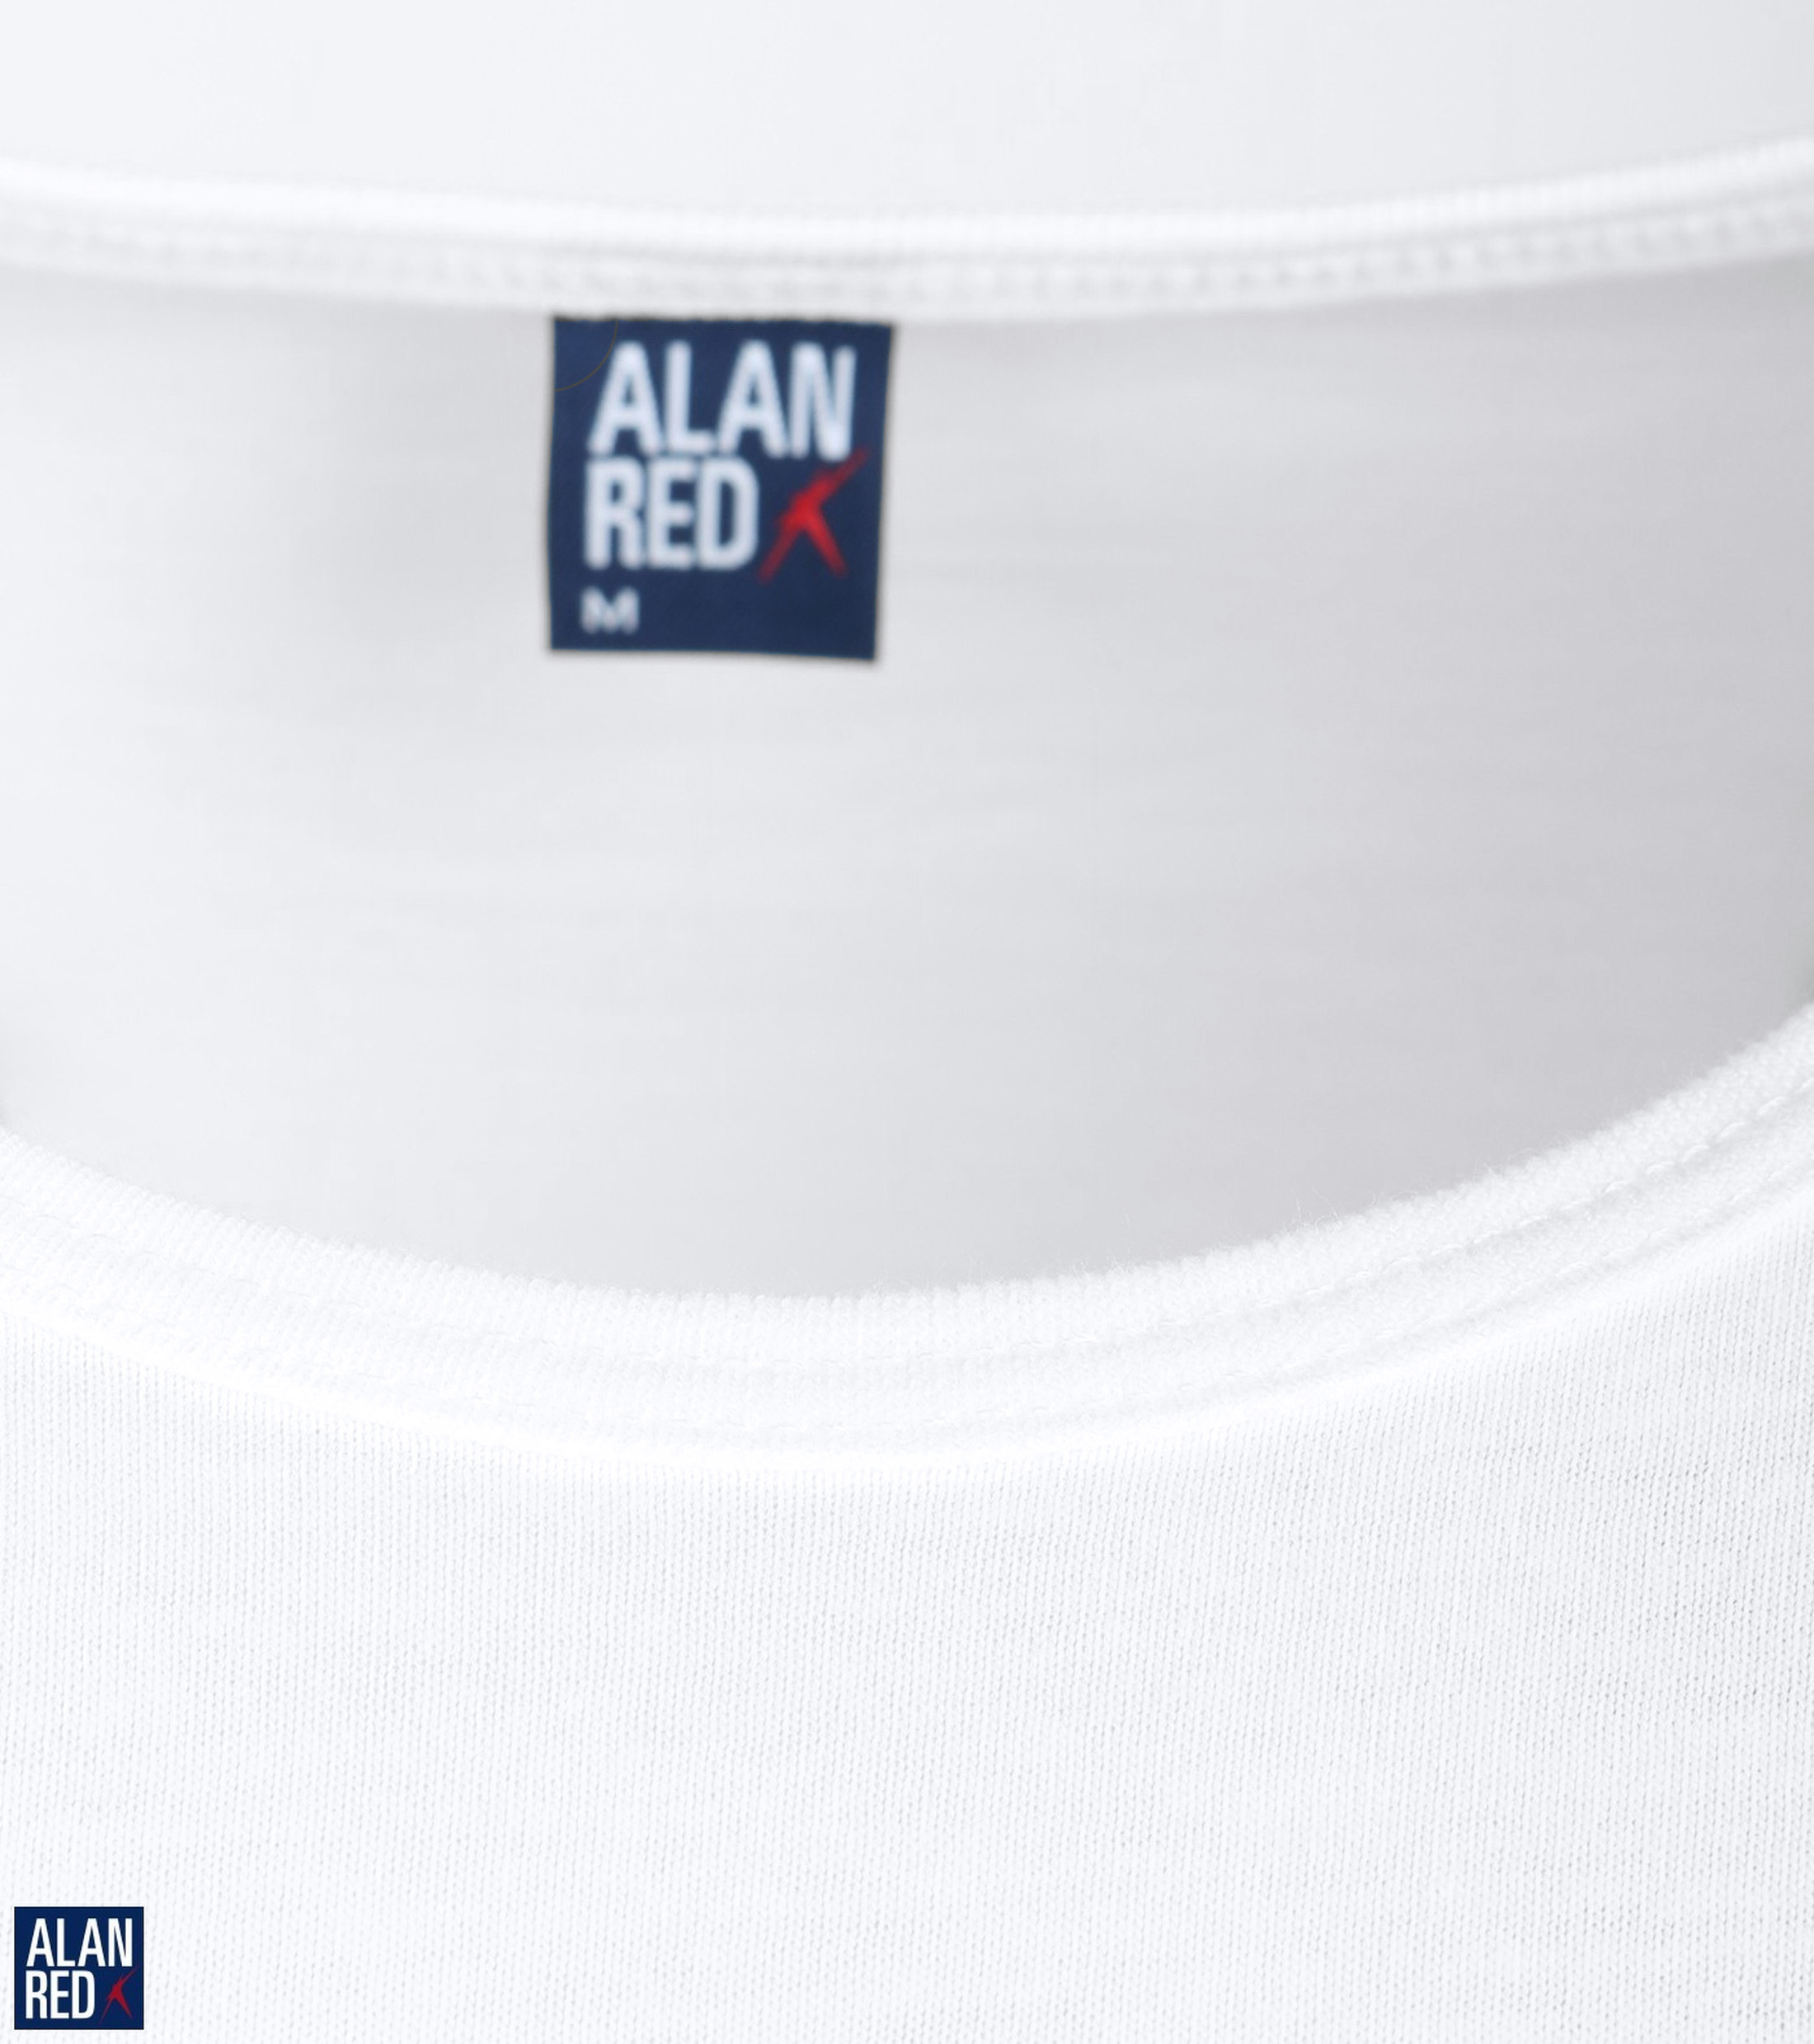 Alan Red Special Offer O-Neck T-shirts White 6-Pack foto 1